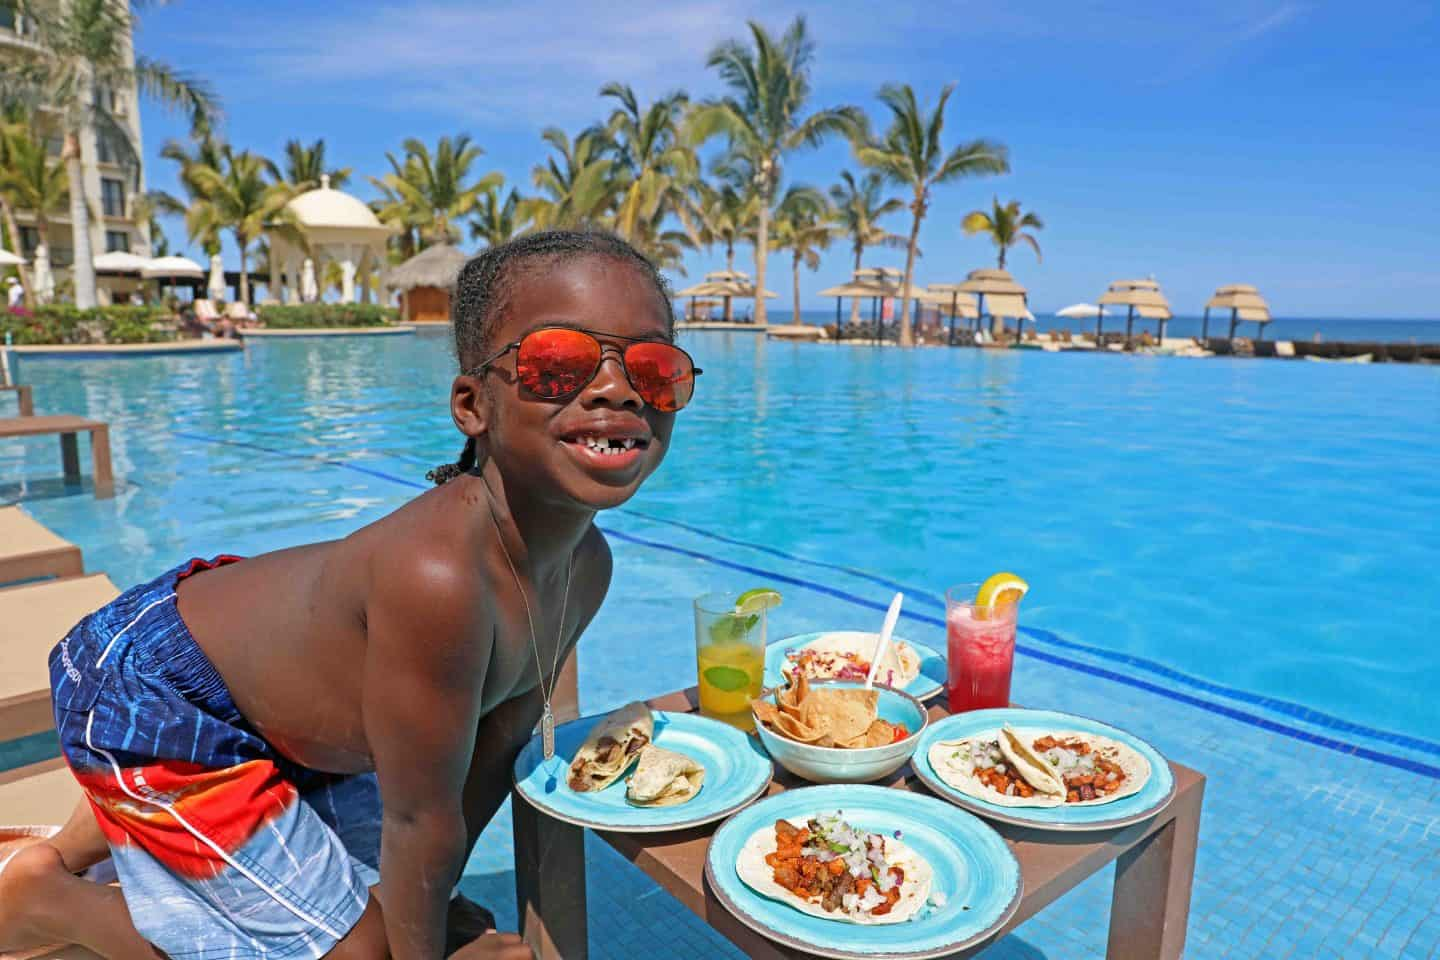 Best All-Inclusive Resorts For Families In Baja California Sur, Mexico (Cabo San Lucas)